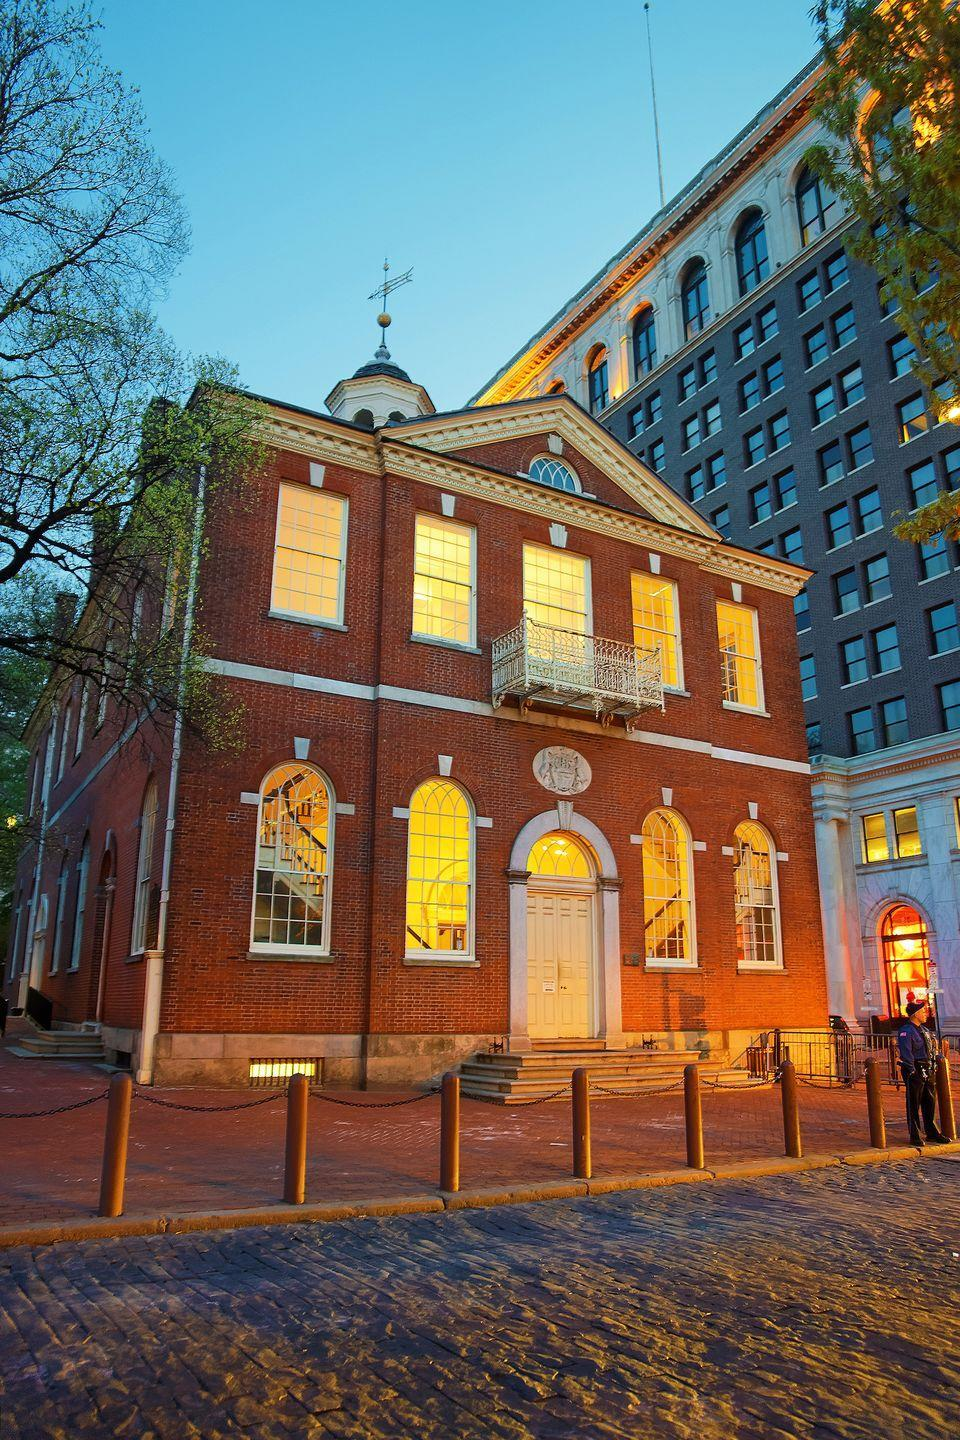 """<p>Definitely not suitable for little ones, this terrifying 105-minute tour schools you on hauntings, executions, vampires, and other chilling tales, all while you get the chance to explore Philadelphia's historic buildings.</p><p><a class=""""link rapid-noclick-resp"""" href=""""https://go.redirectingat.com?id=74968X1596630&url=https%3A%2F%2Fwww.tripadvisor.com%2FAttractionProductReview-g60795-d11854370-Dark_Philly_Adult_Night_Tour-Philadelphia_Pennsylvania.html&sref=https%3A%2F%2Fwww.redbookmag.com%2Flife%2Fg37623207%2Fghost-tours-near-me%2F"""" rel=""""nofollow noopener"""" target=""""_blank"""" data-ylk=""""slk:LEARN MORE"""">LEARN MORE</a></p>"""